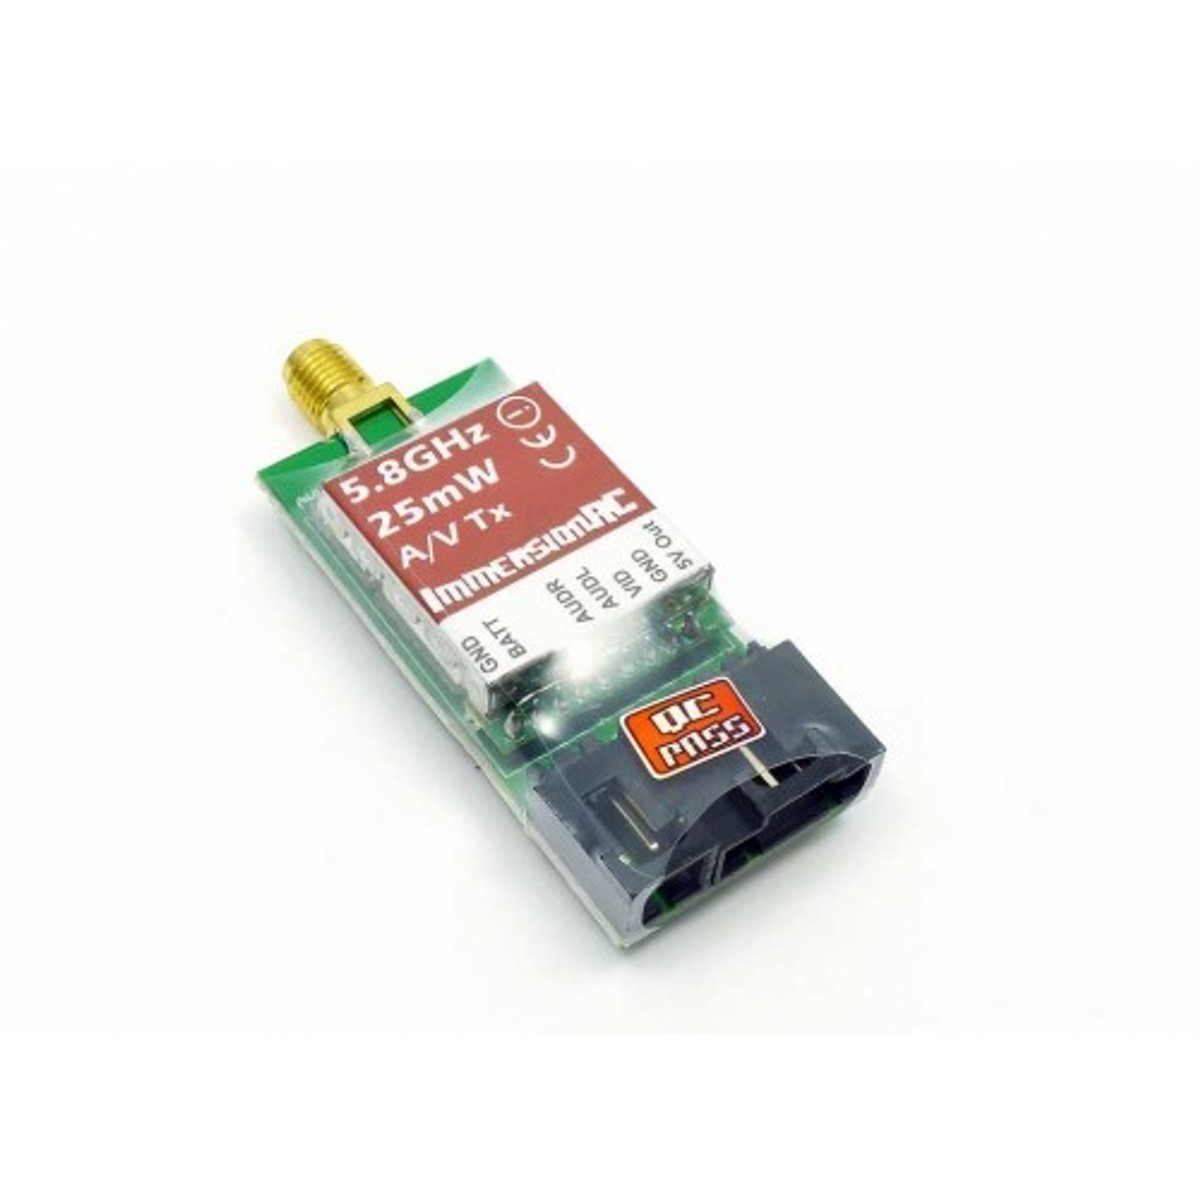 4701002 / MC / ImmersionRC 5.8GHz 25mW Transmitter für FPV / LEGAL IN D / 6-25V - Bild 1